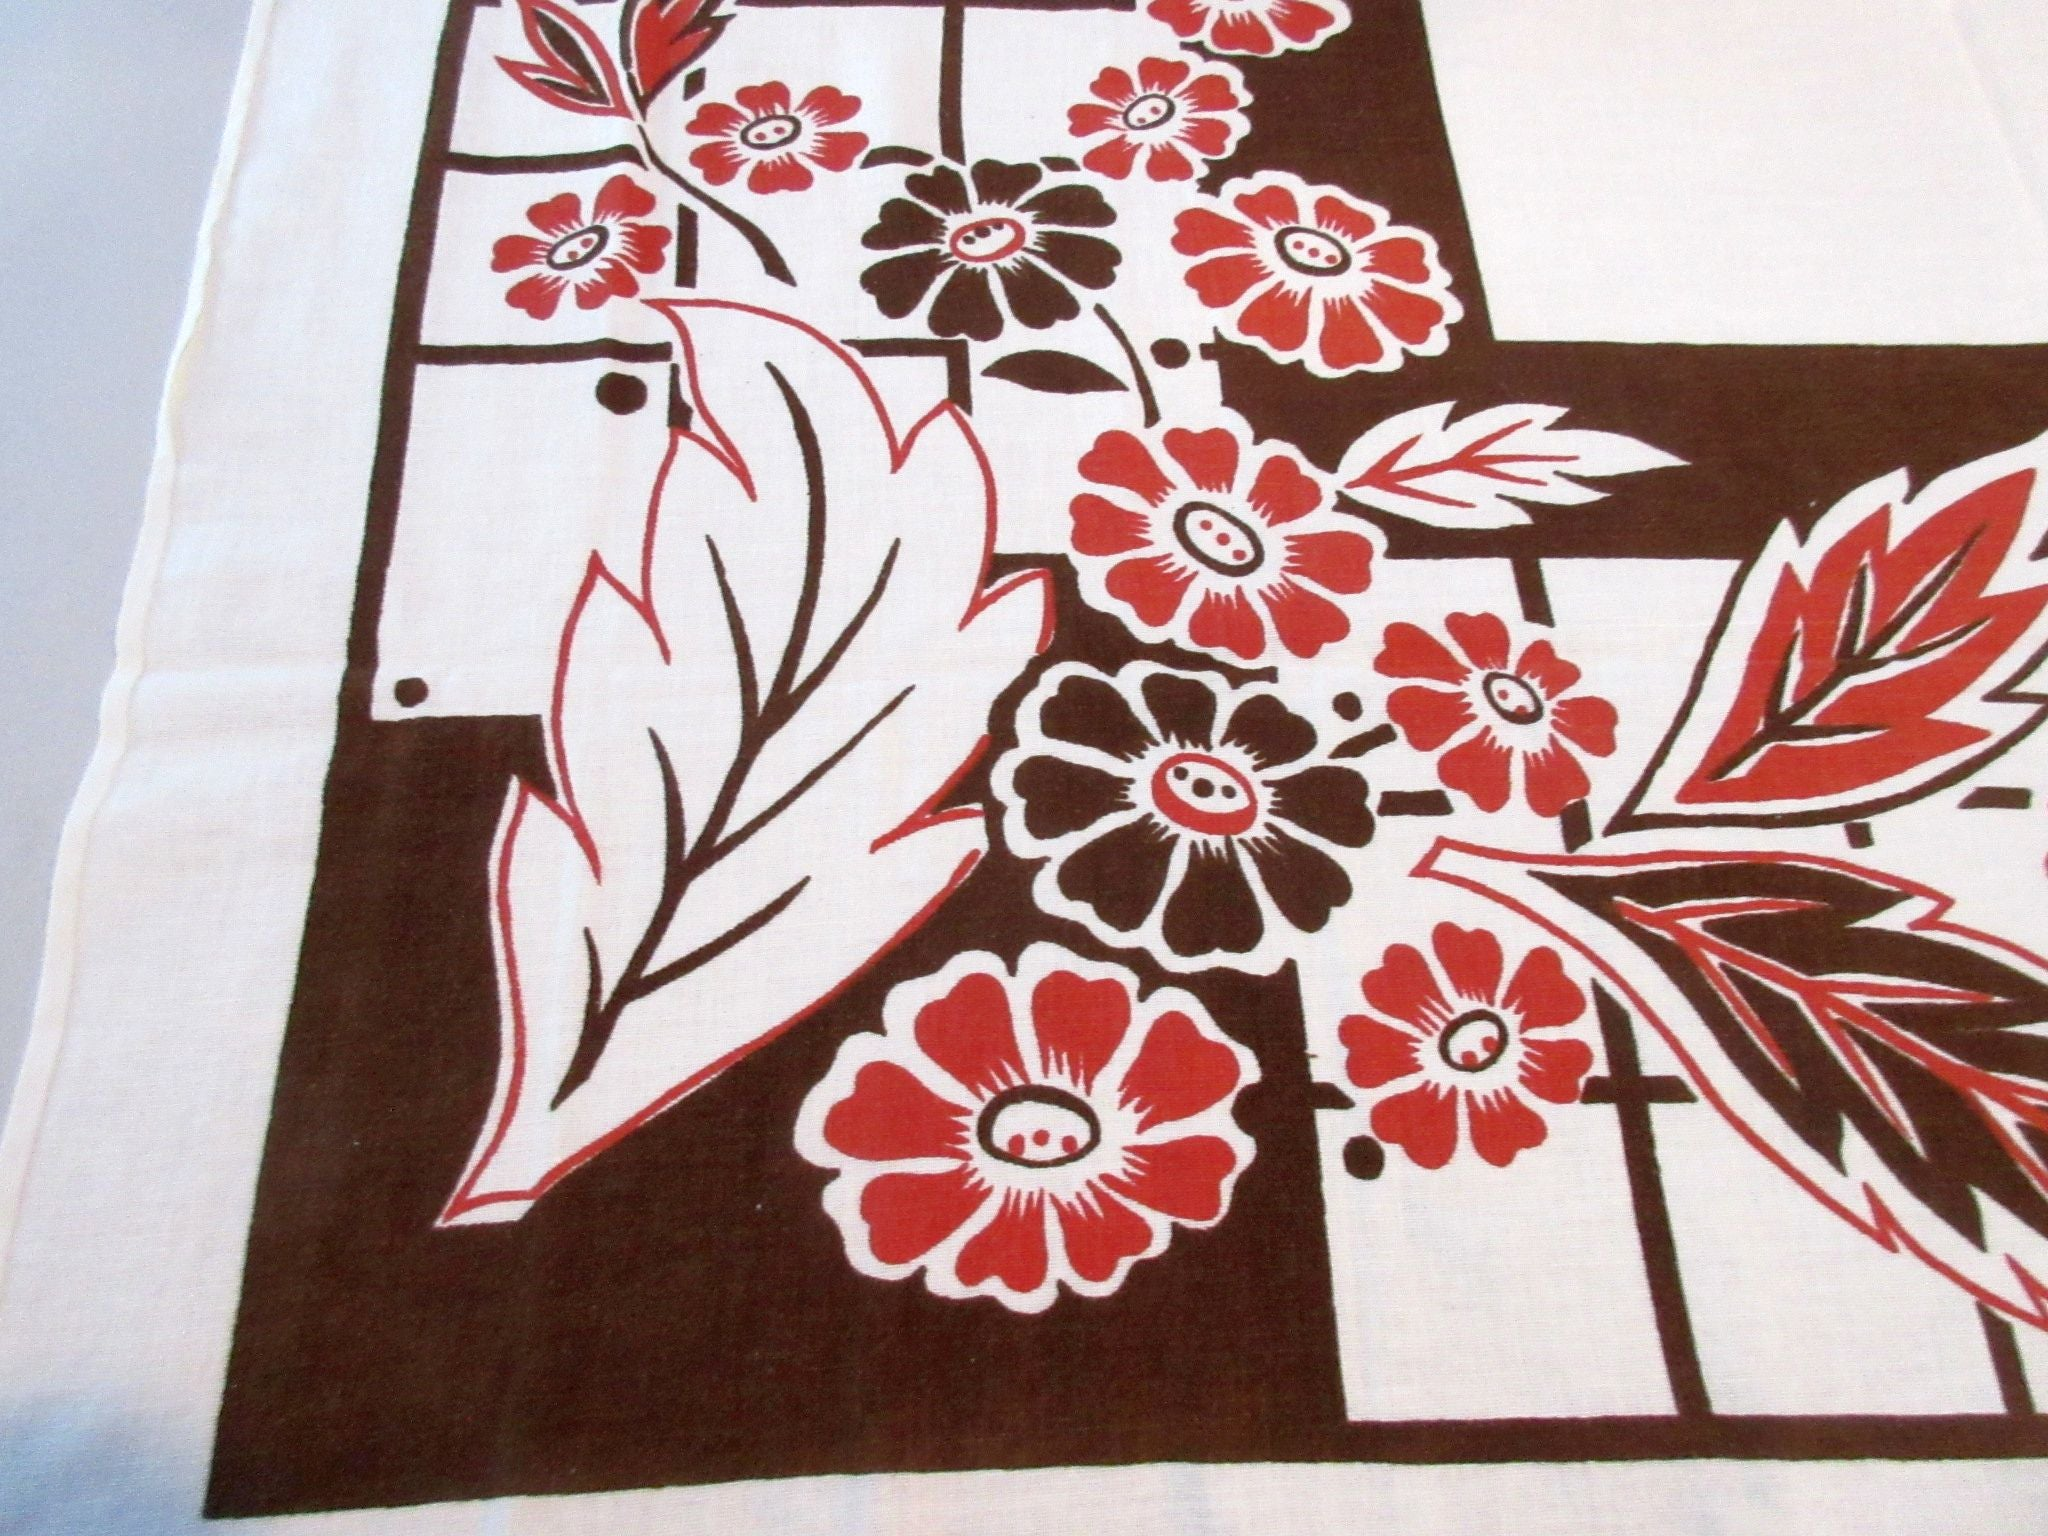 Early Brown Rust Stylized Floral Vintage Printed Tablecloth (46 X 44)